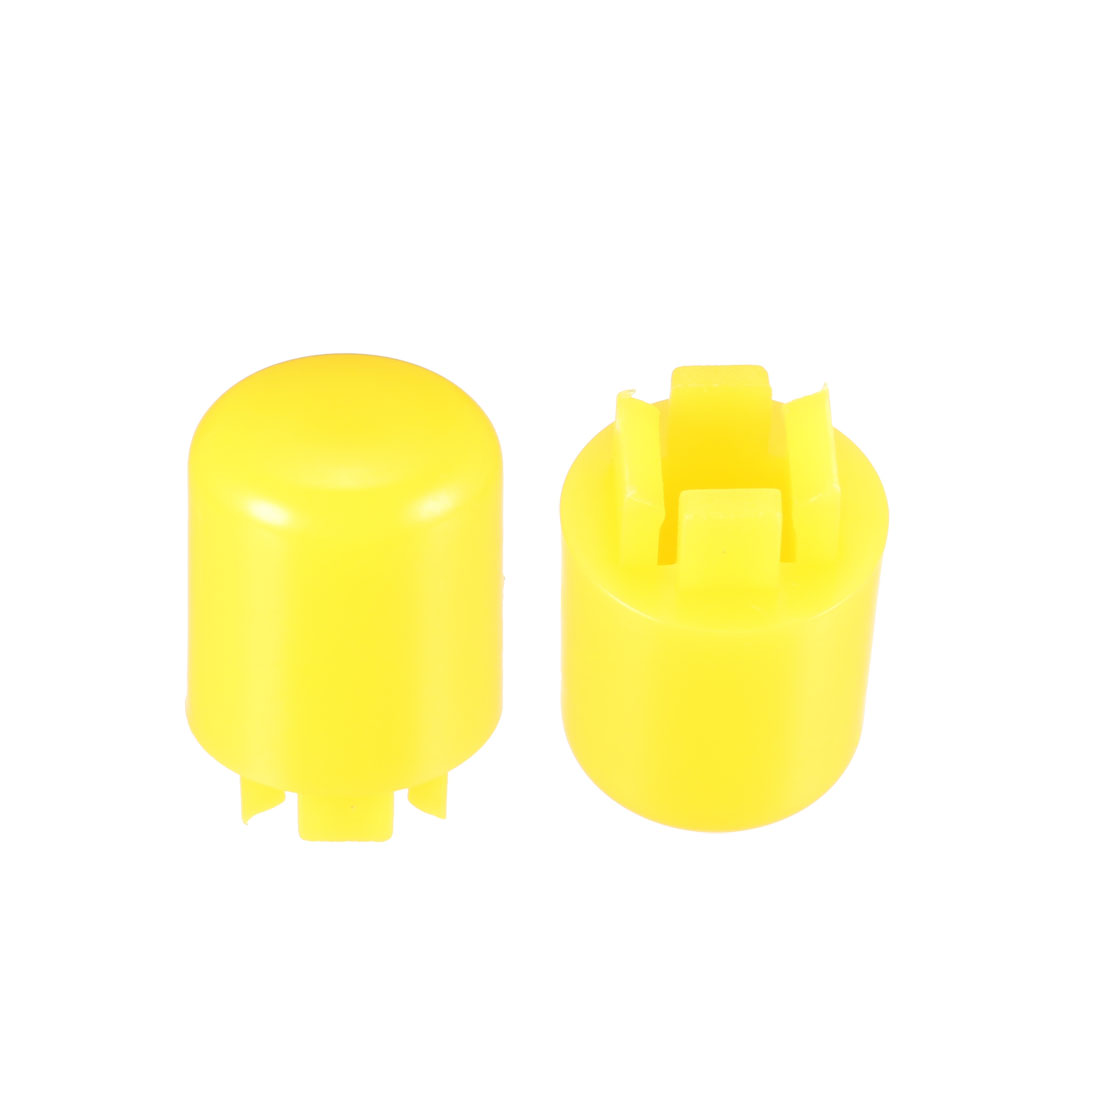 20Pcs Pushbutton Tactile Switch Caps Cover Yellow for 12x12x7.3mm Tact Switch